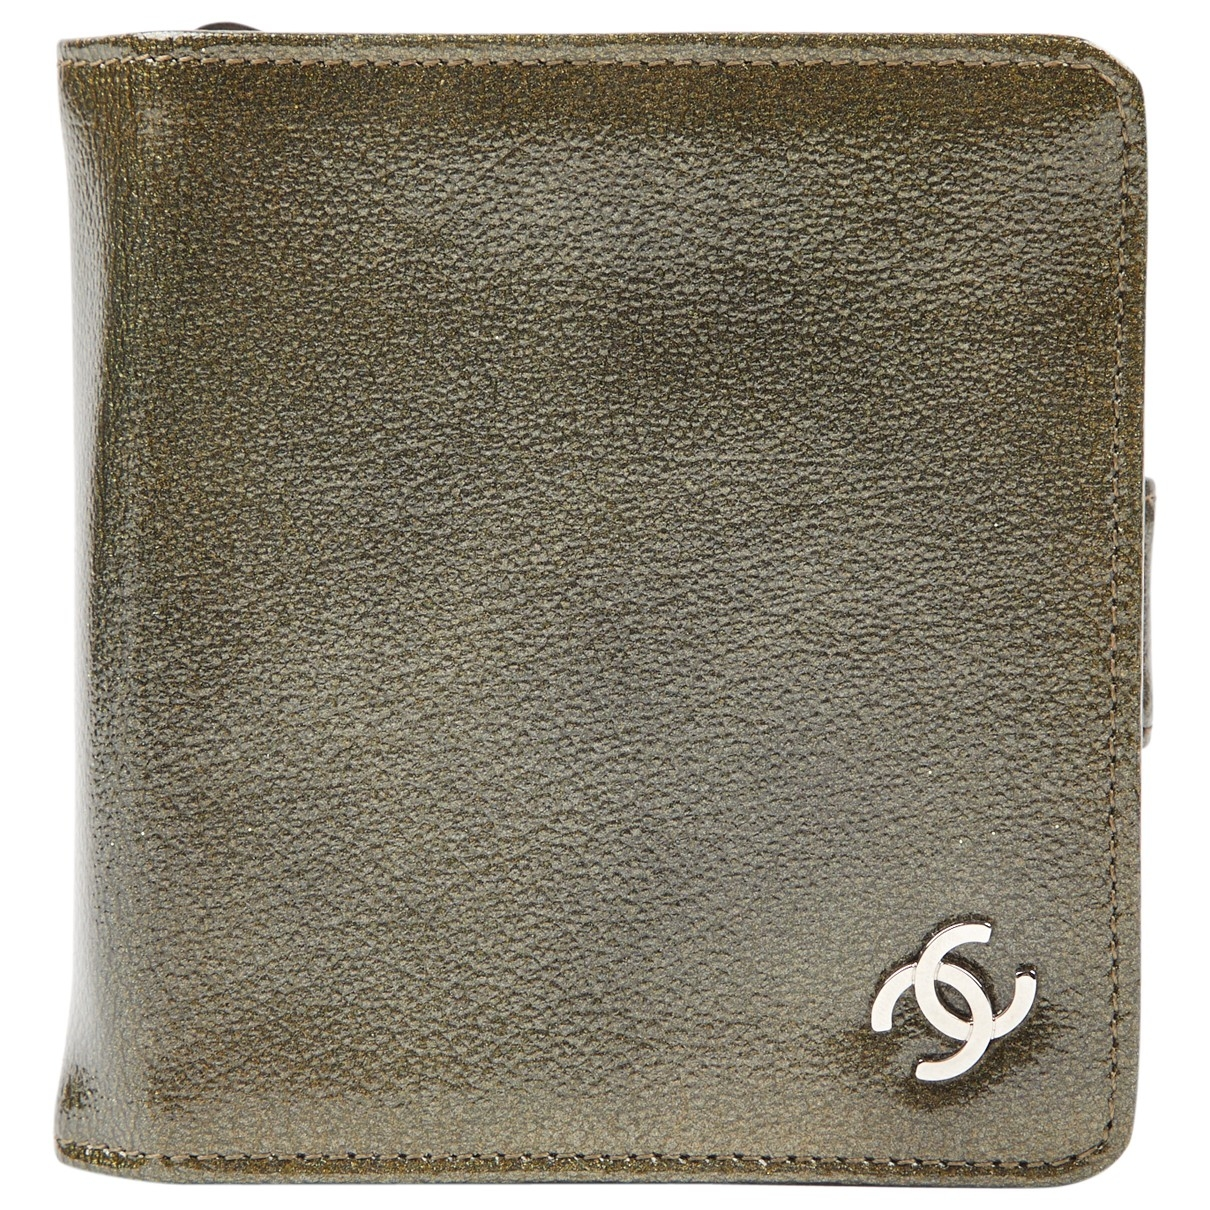 Chanel \N Khaki Patent leather Purses, wallet & cases for Women \N